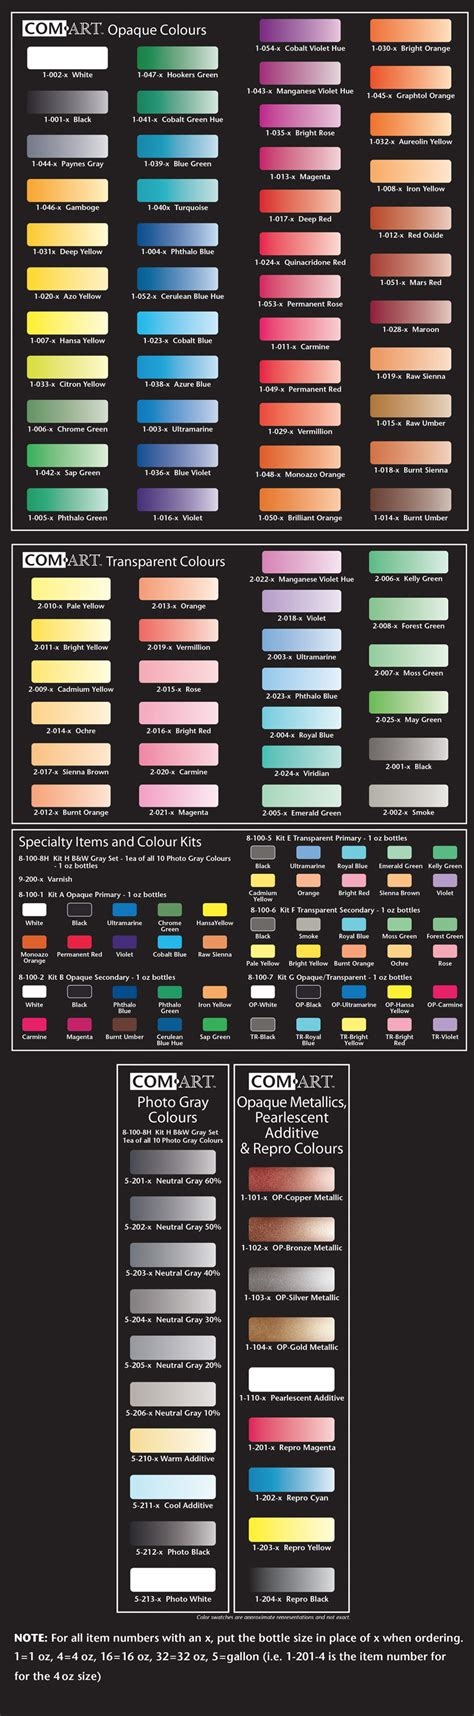 colours midwest airbrush supply